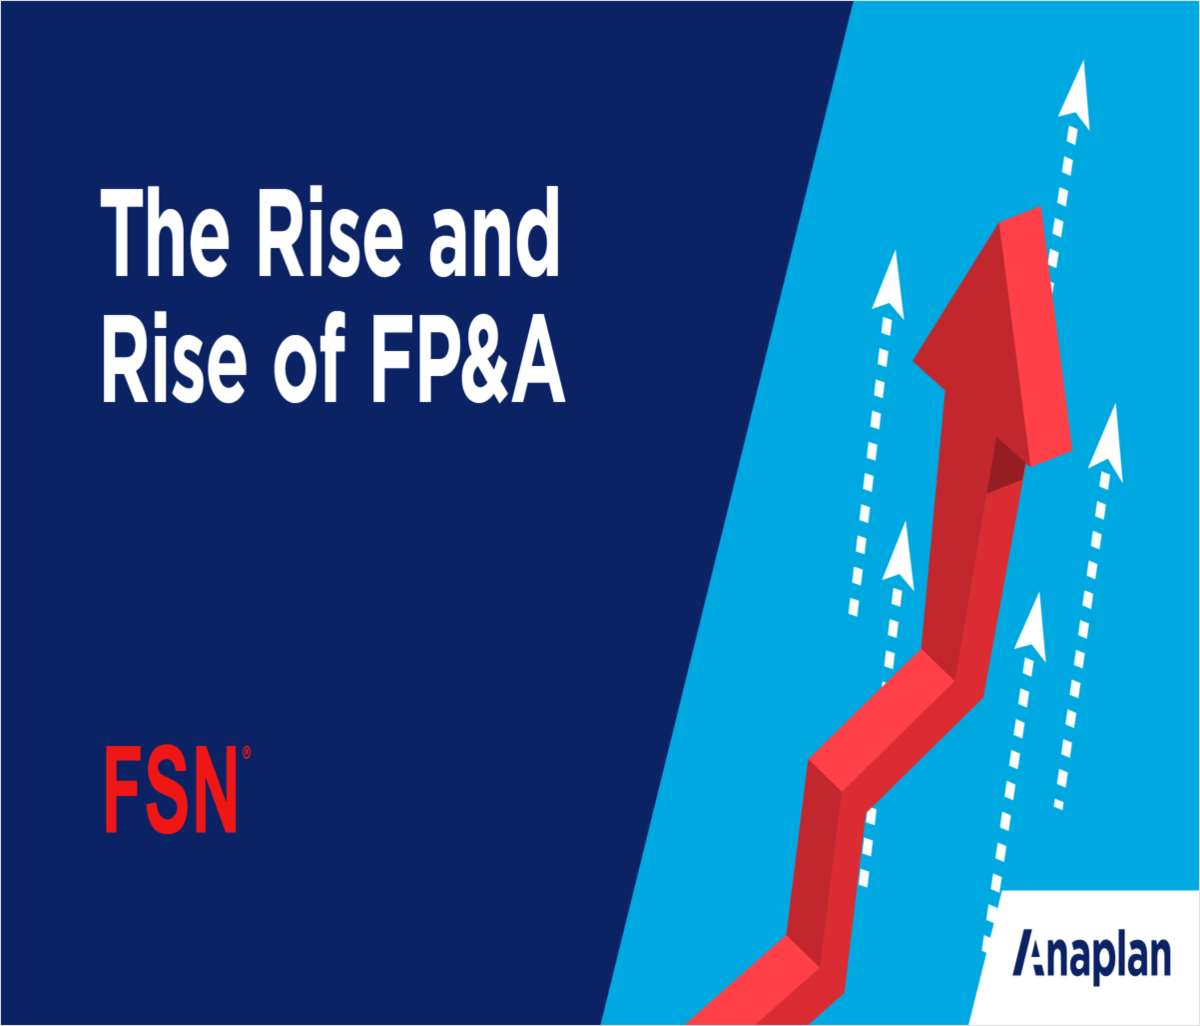 The Rise and Rise of FP&A